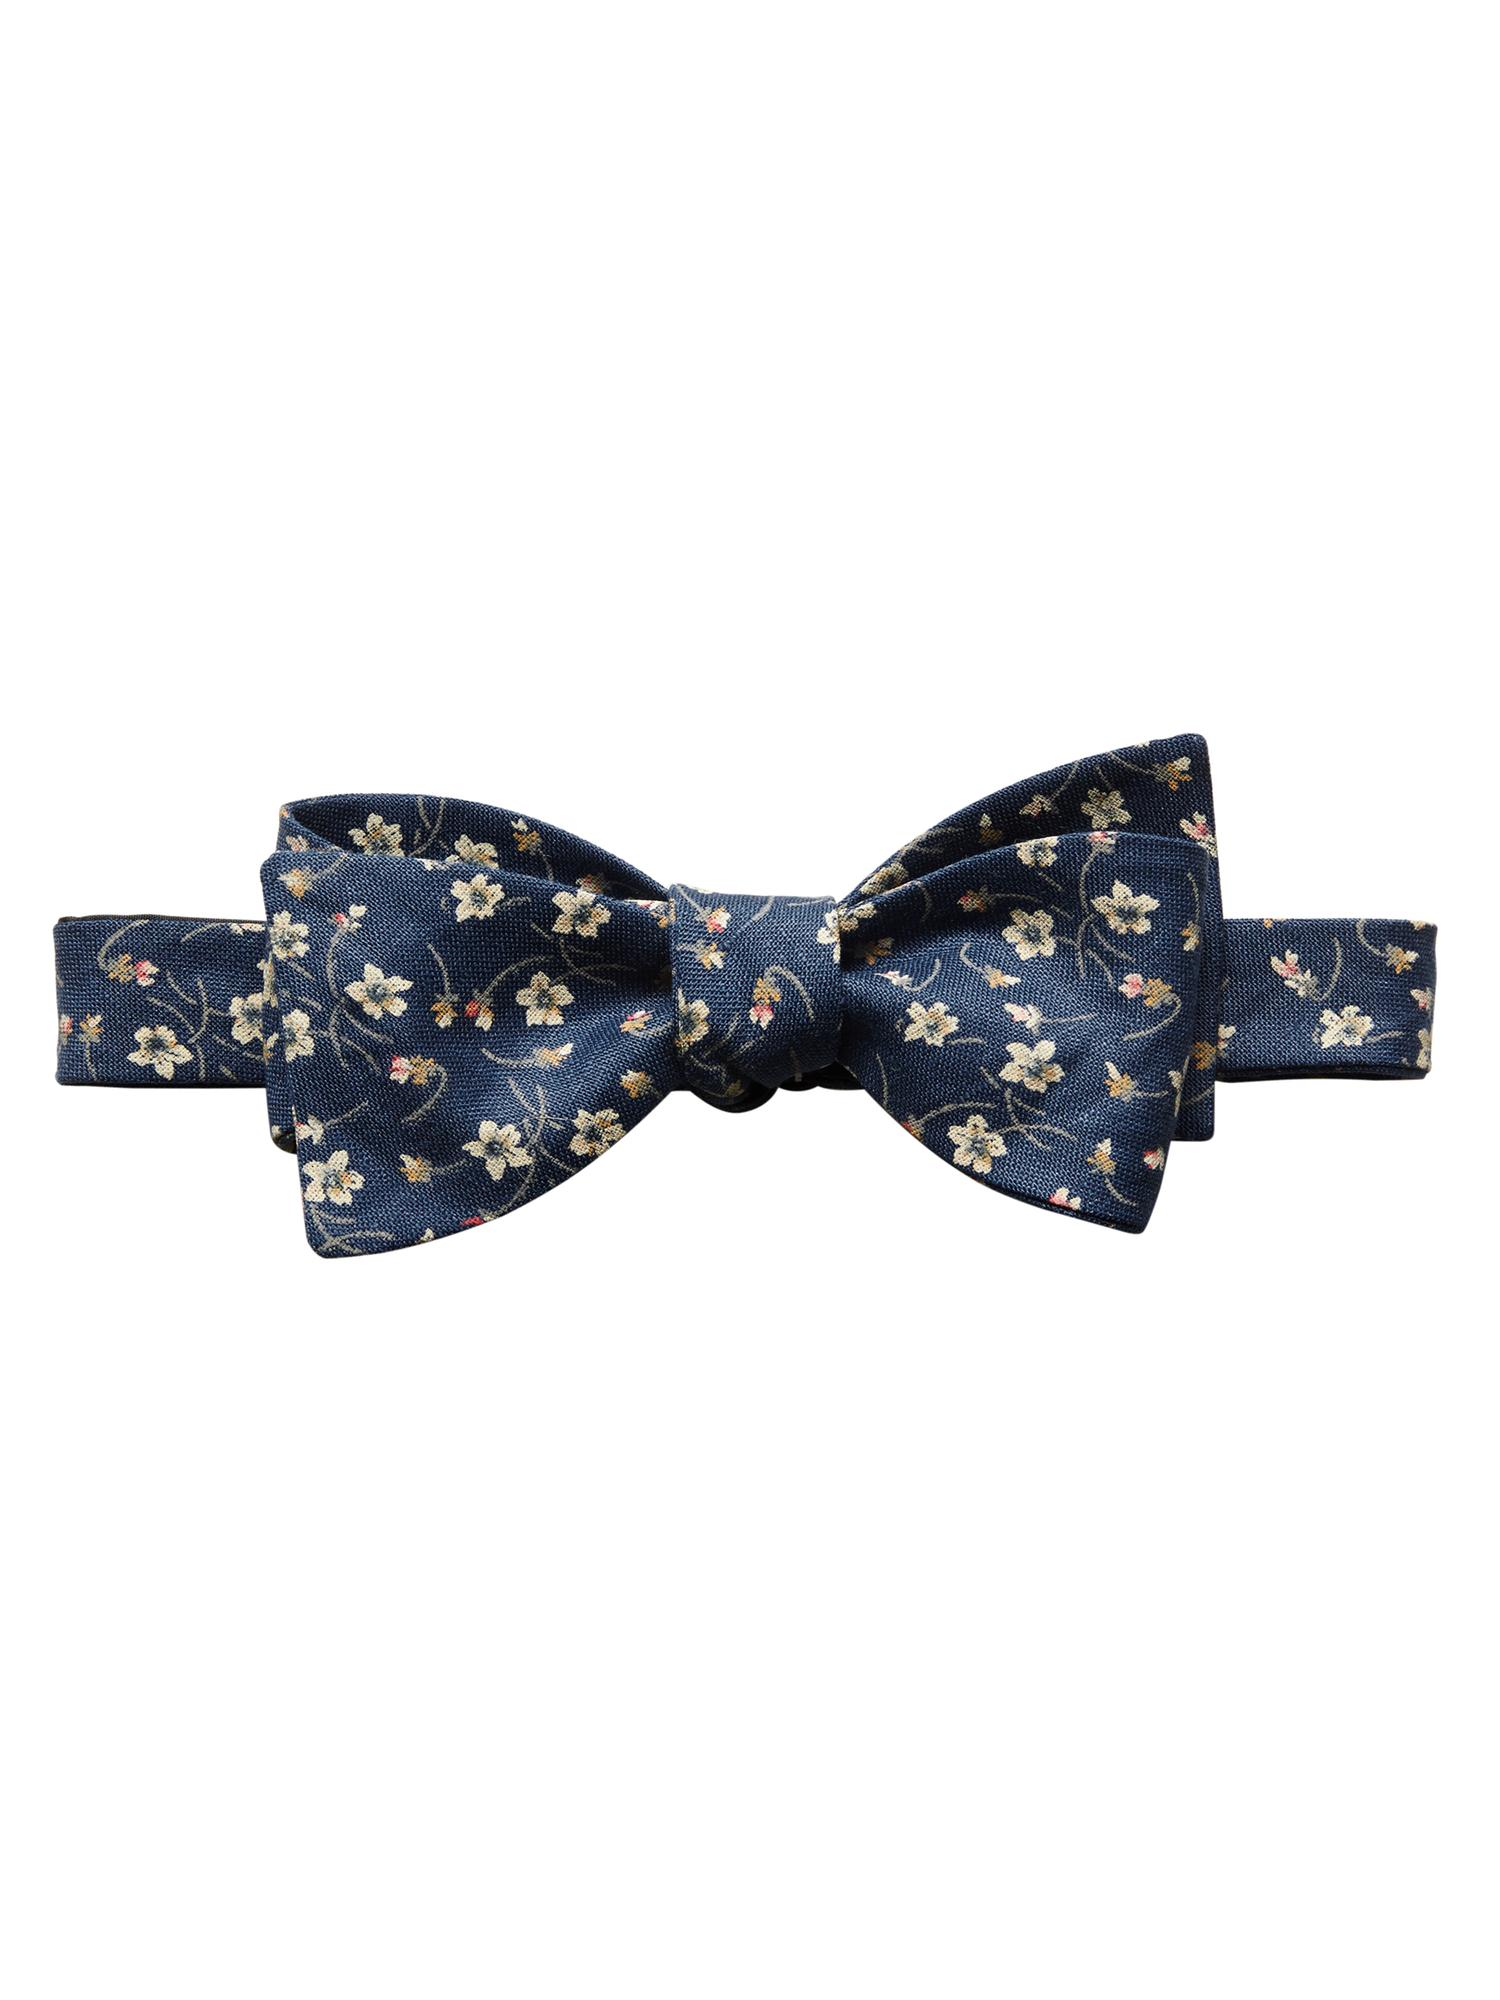 Floral Prints for Guys - Banana Republic Floral Bow Tie